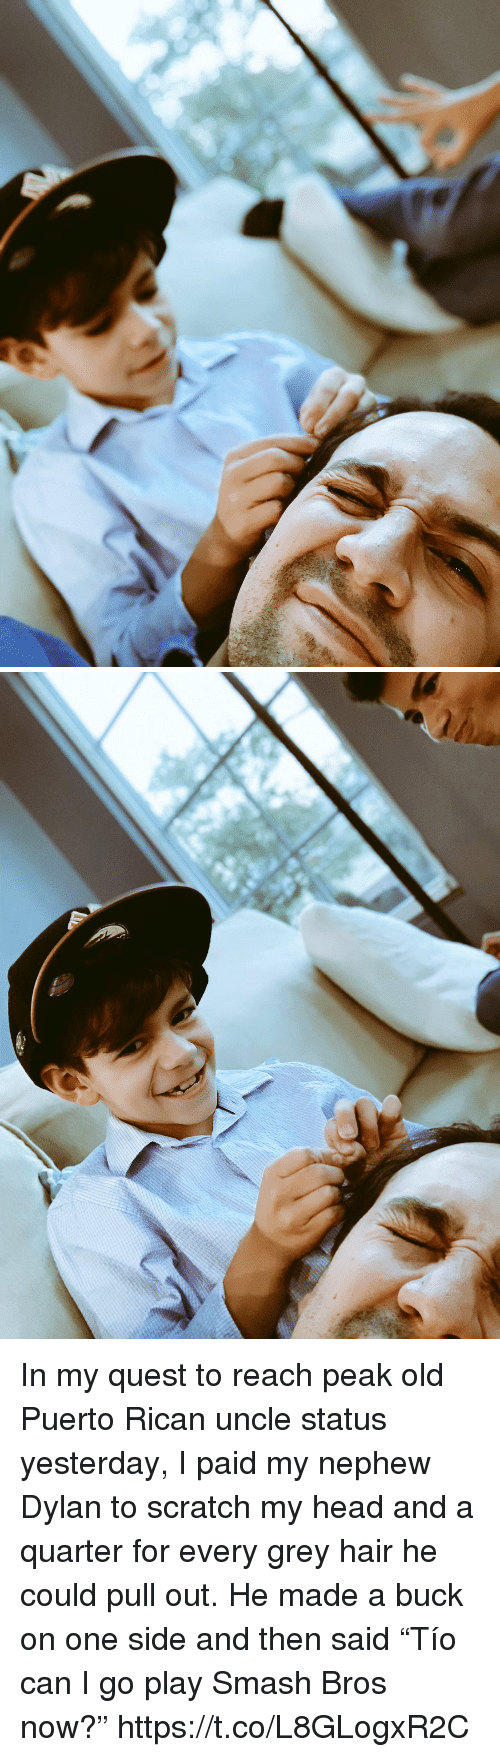 """Head, Memes, and Smashing: In my quest to reach peak old Puerto Rican uncle status yesterday, I paid my nephew Dylan to scratch my head and a quarter for every grey hair he could pull out. He made a buck on one side and then said """"Tío can I go play Smash Bros now?"""" https://t.co/L8GLogxR2C"""